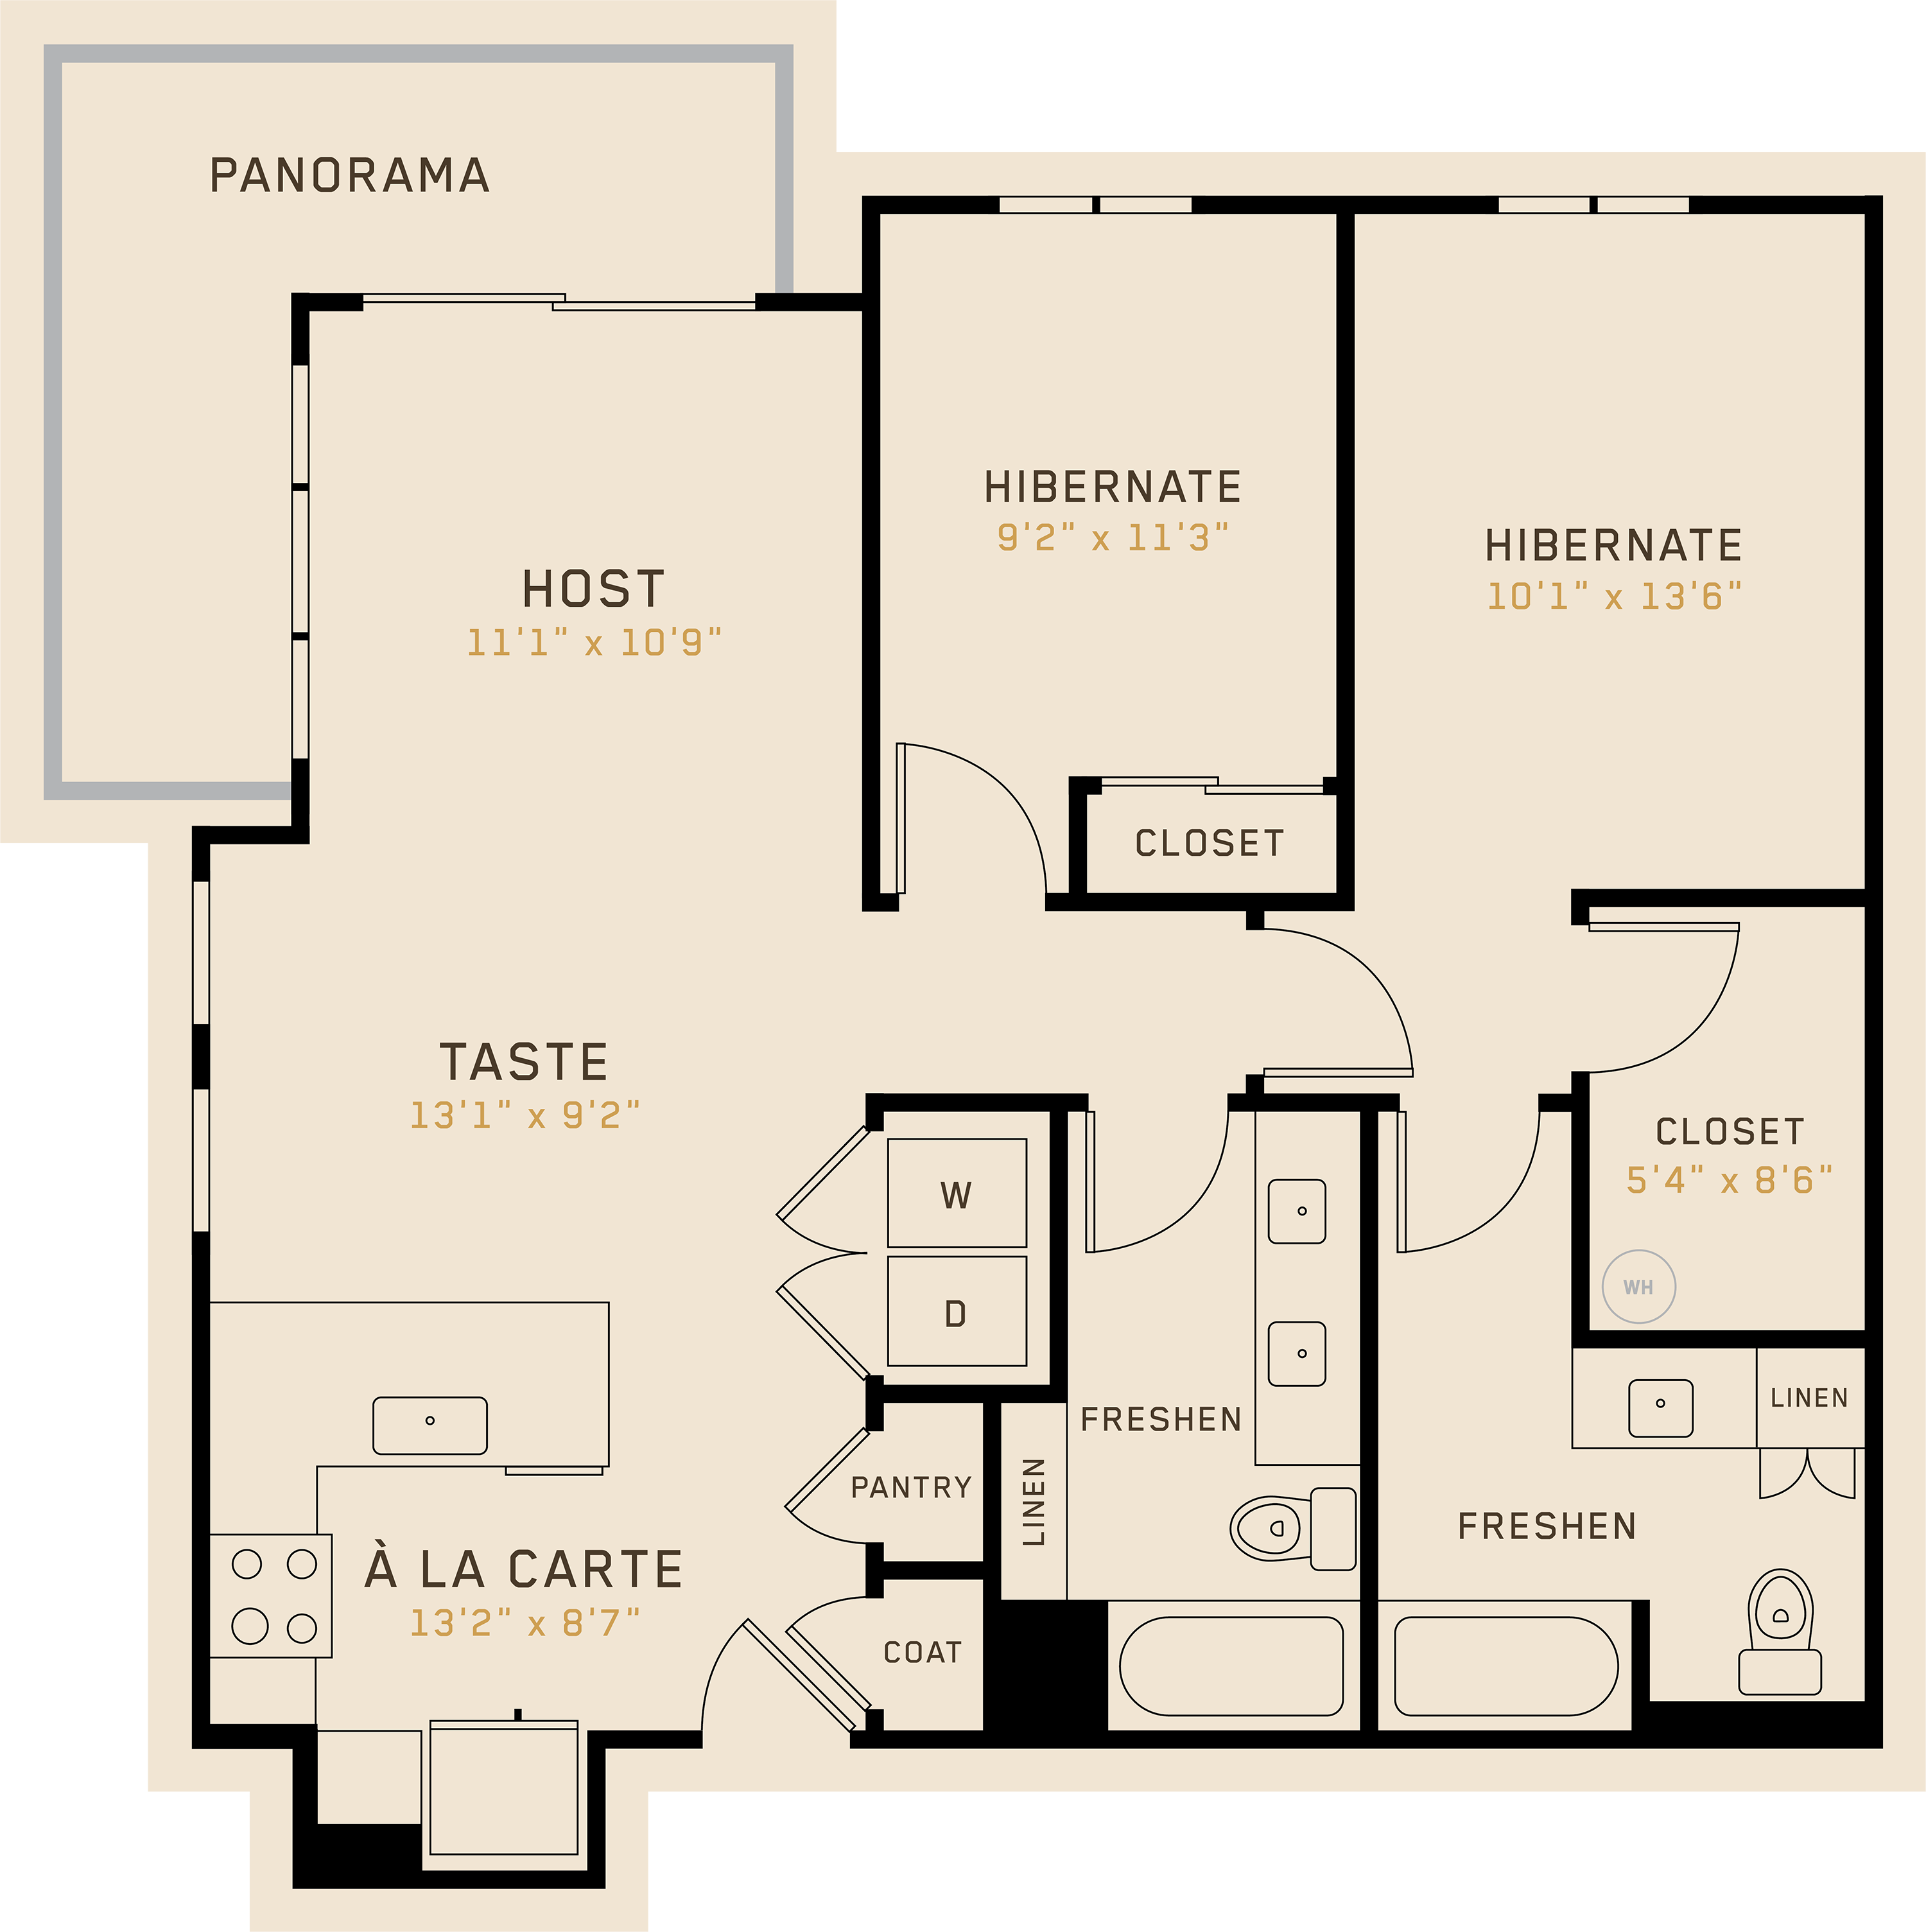 B2I floor plan featuring 2 bedrooms, 2 bathrooms, and is 1,036 square feet